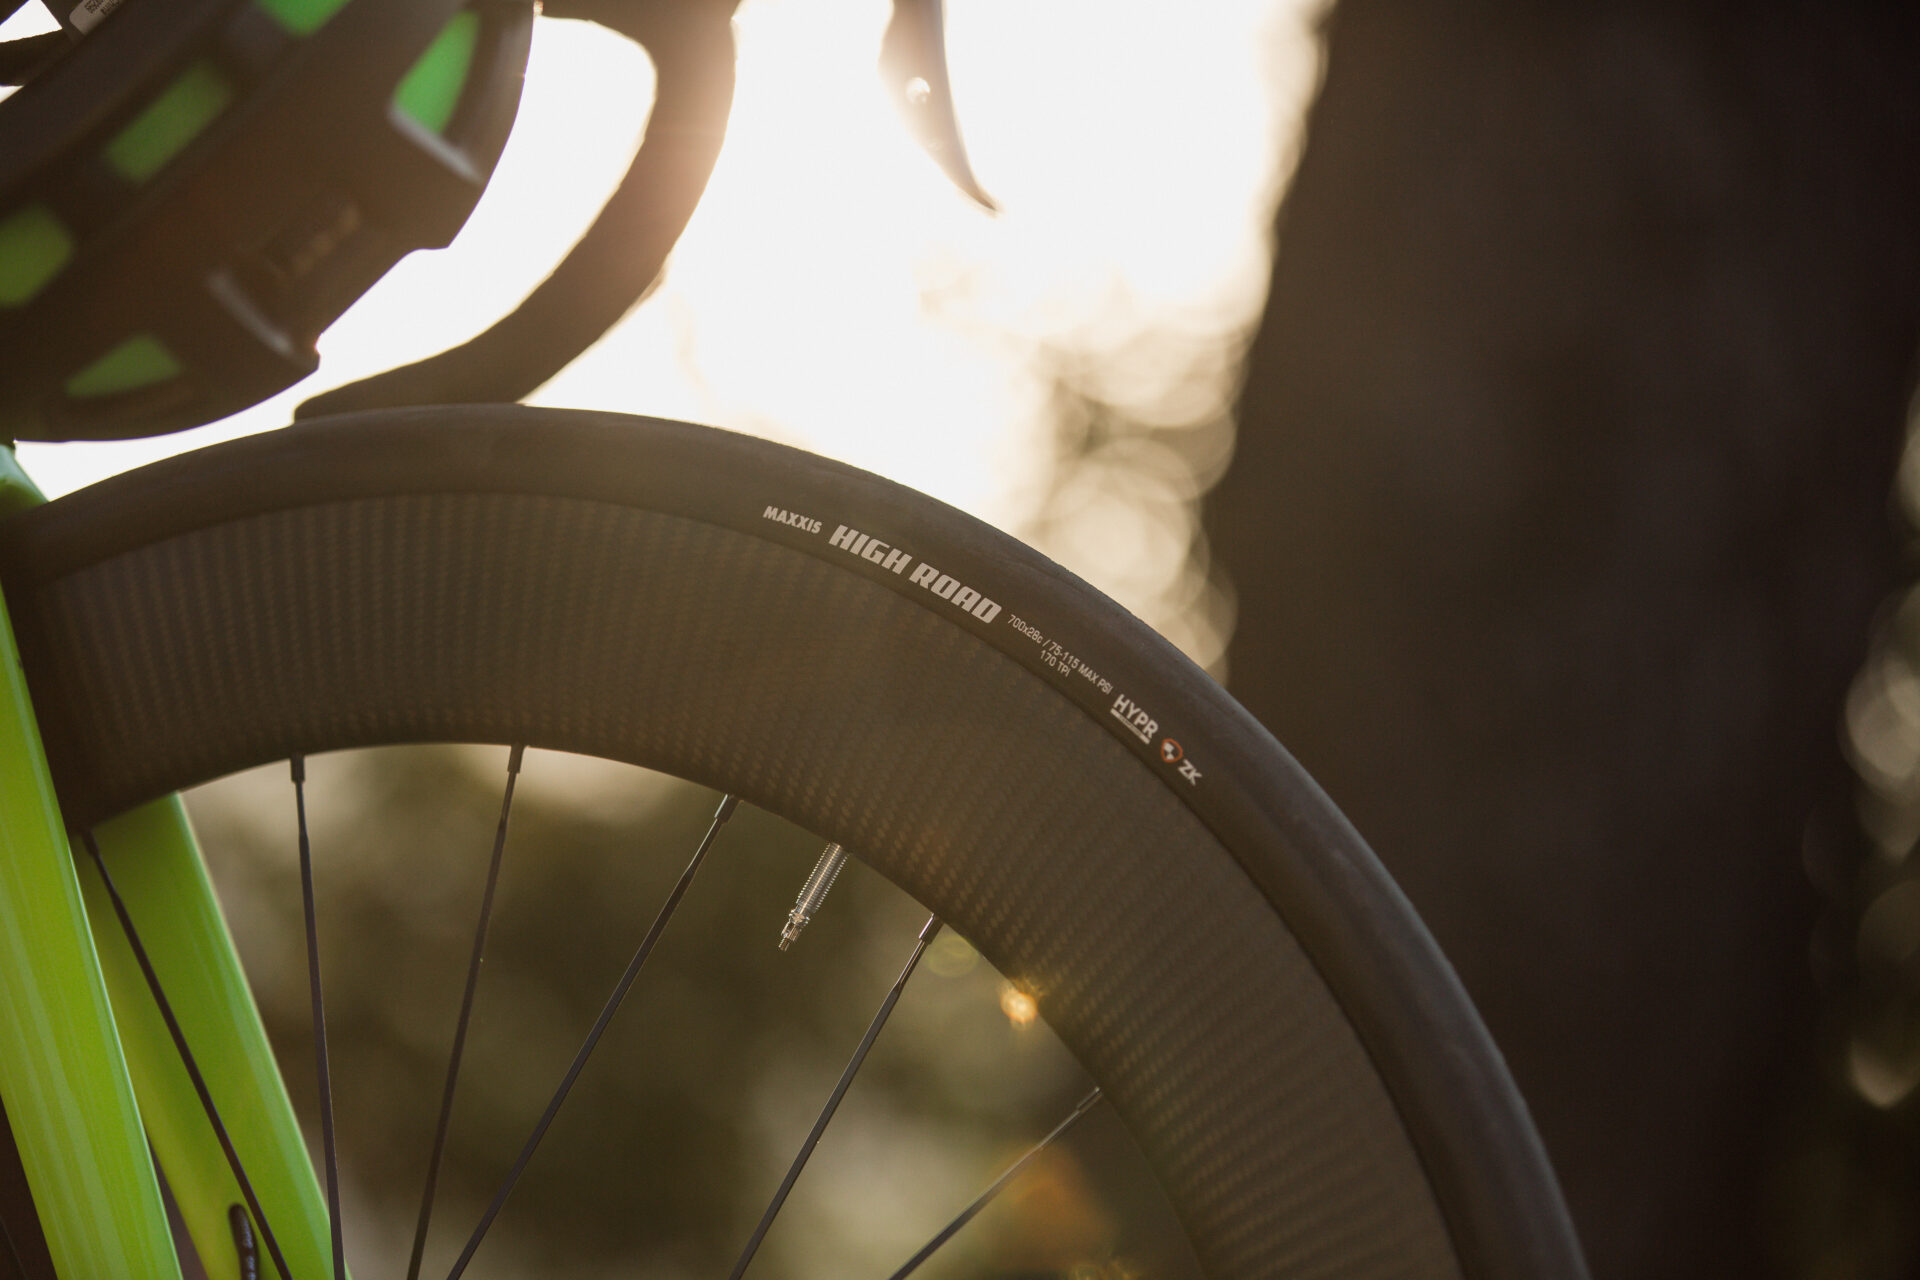 Maxxis High Road bicycle tire - side view.